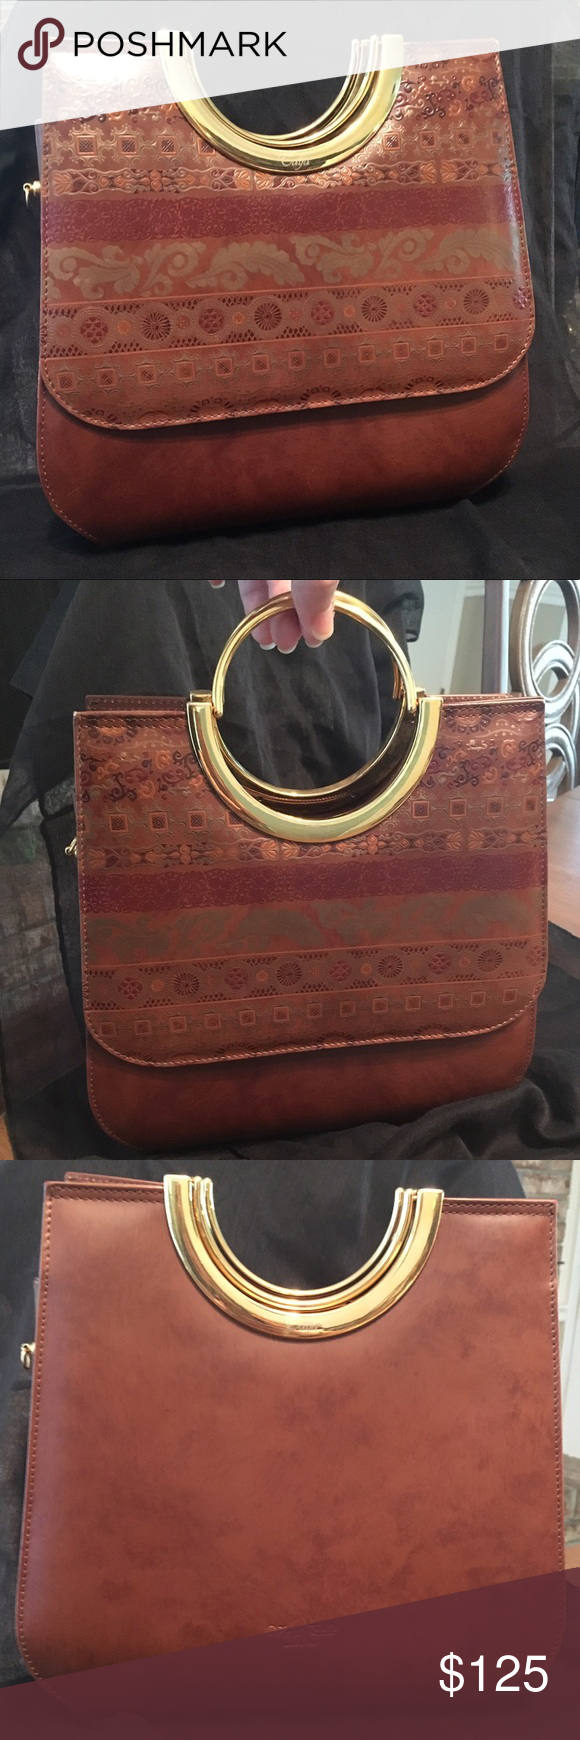 Vera Pelle Italian Brown Leather Handbag Talja Superior This Bag Was